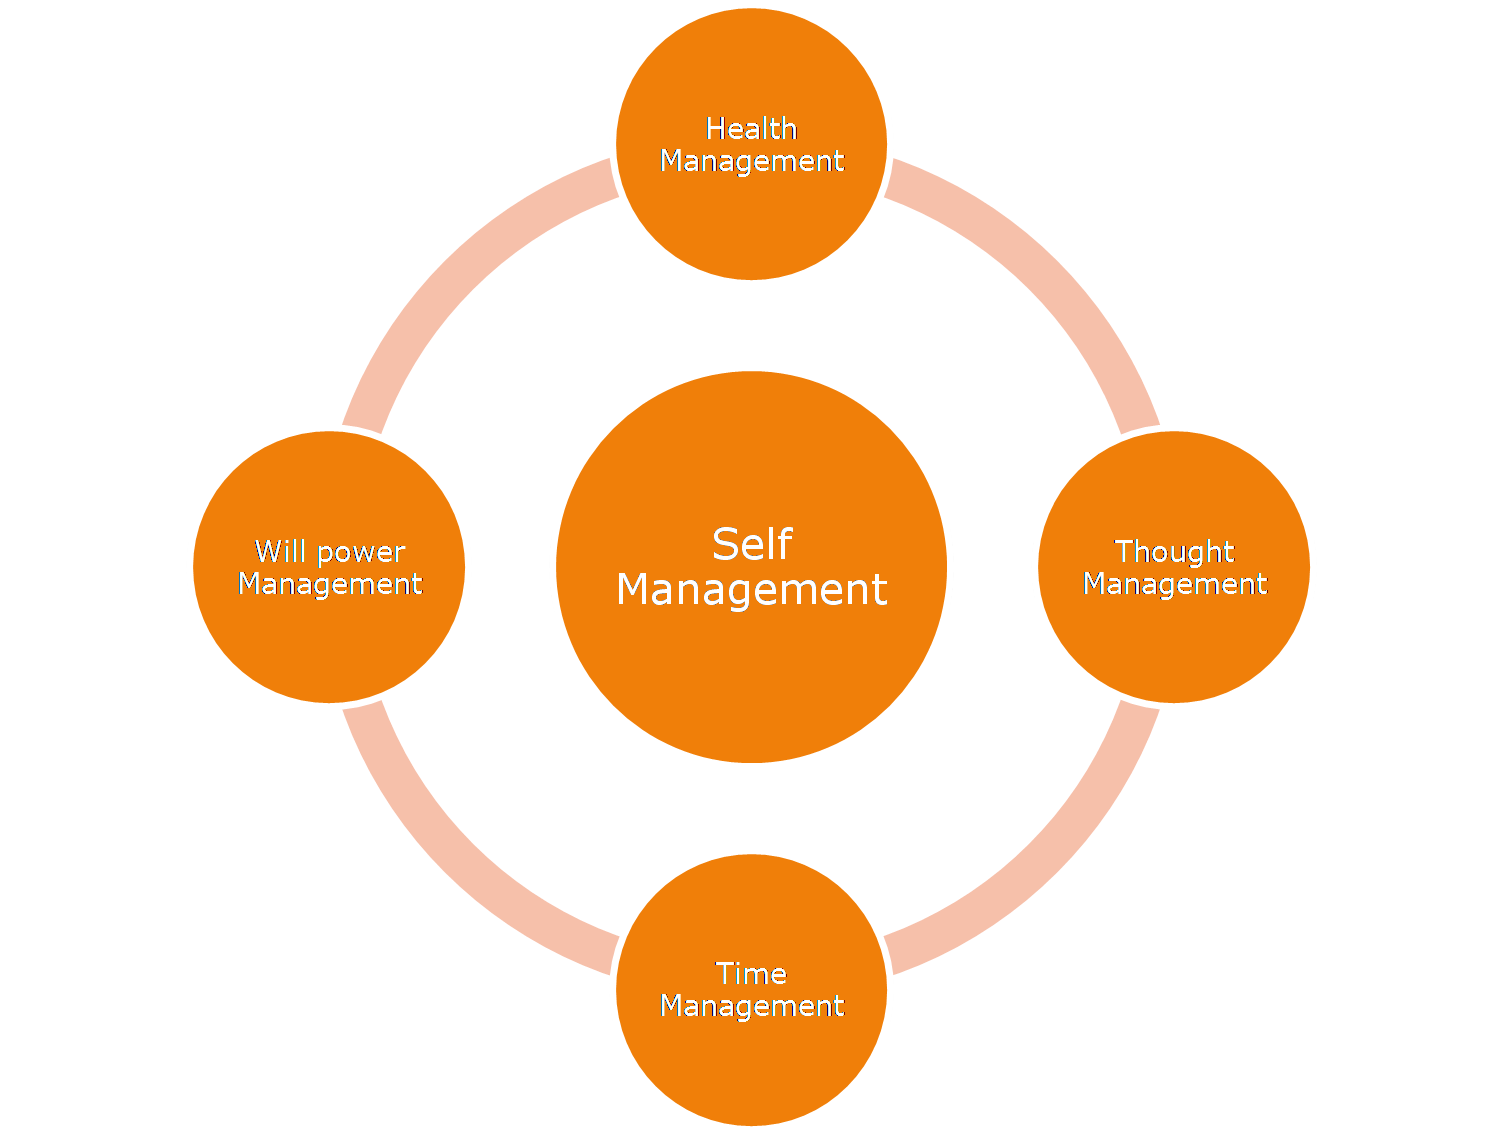 self management service organizations